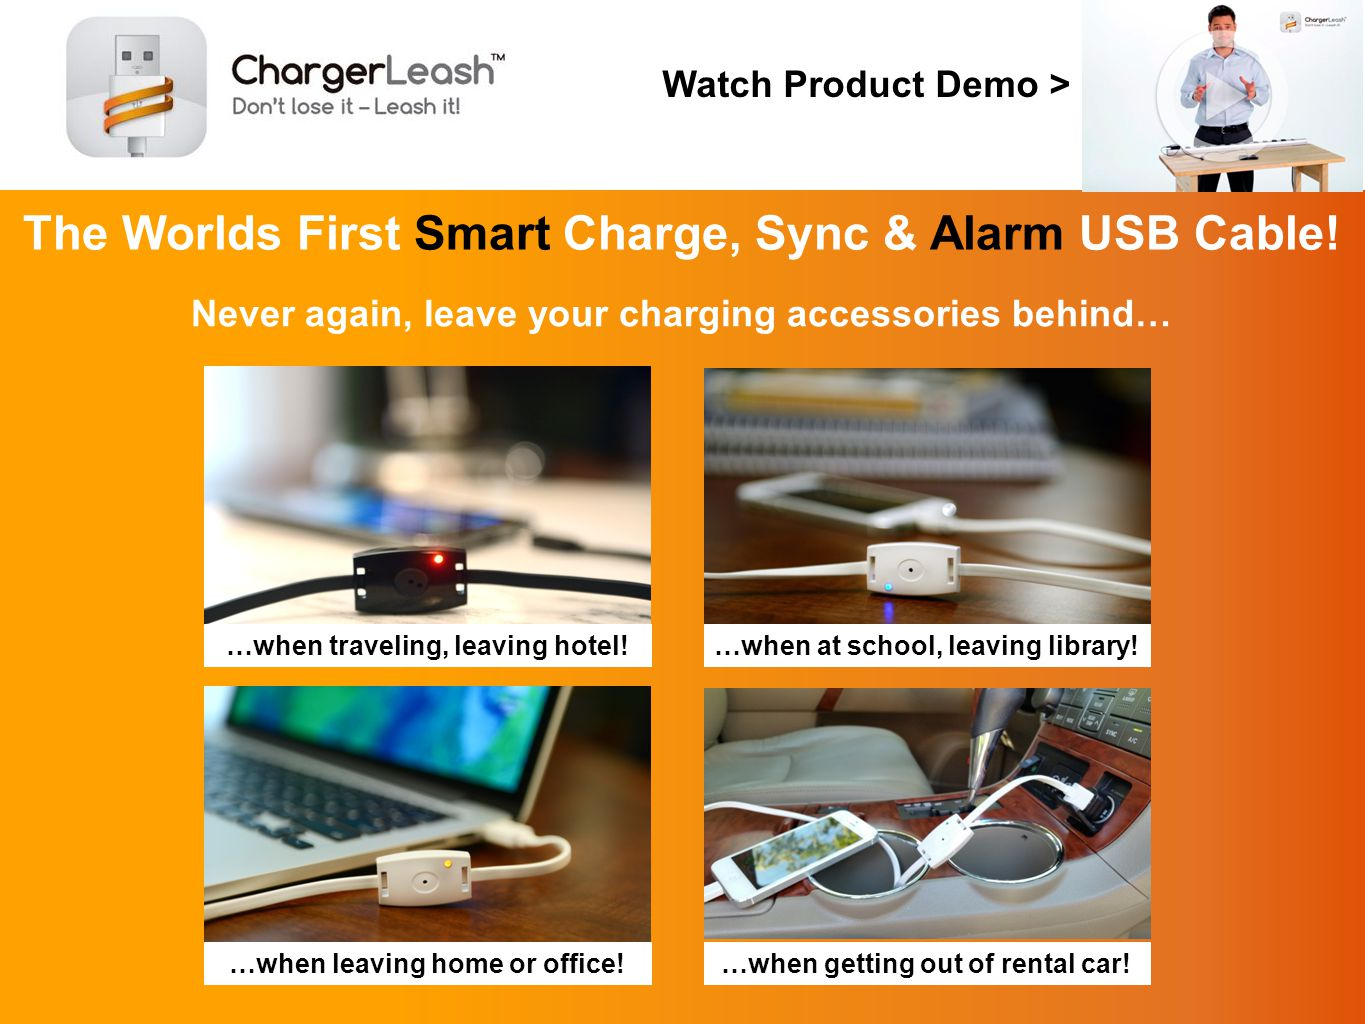 Introducing the Charger leash – the missing link in portable electronics The ChargerLeash Charge & Sync Smart Cable with Loss Prevention Technology for portable devices is the perfect cable for the business traveler that does not want to lose their charger or cord while on the road…or at home.